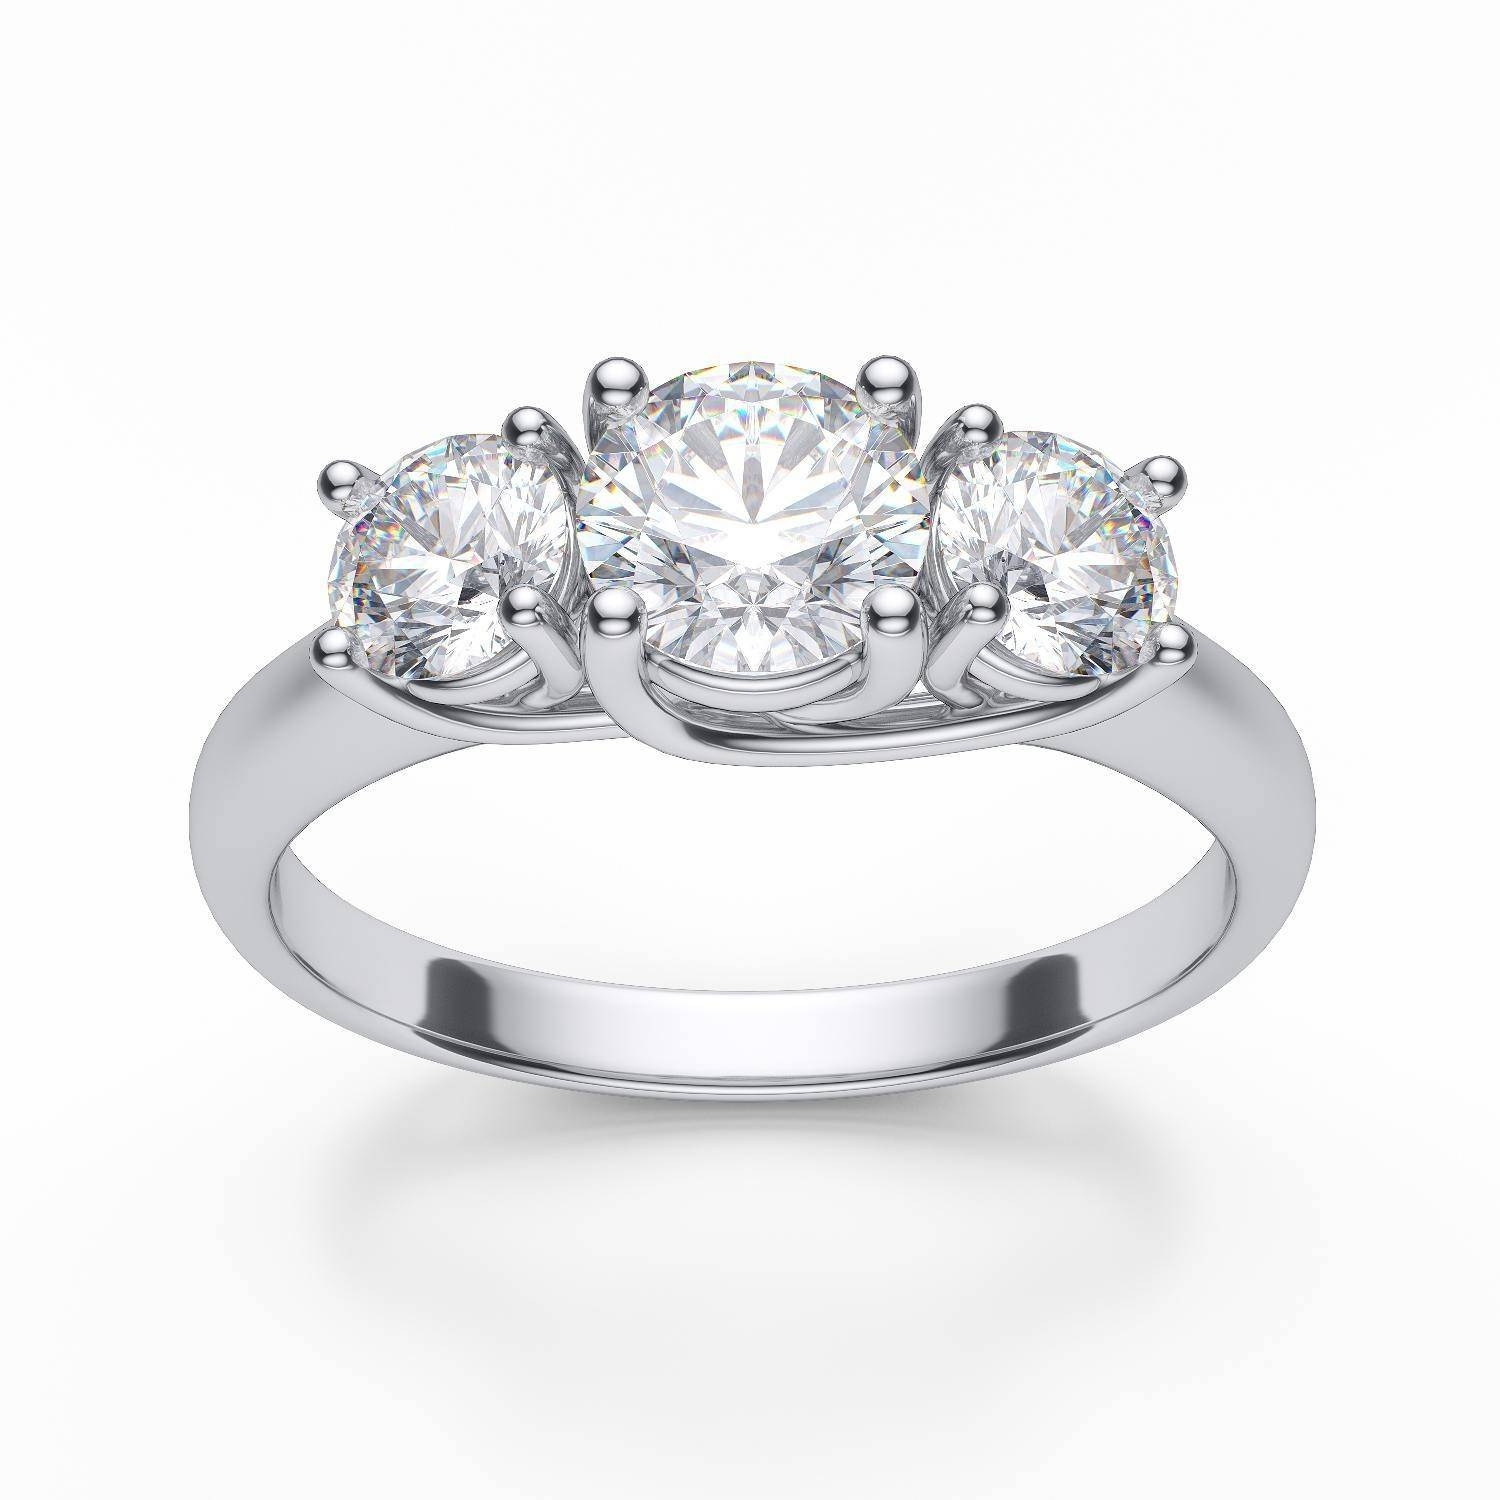 3 Stone Diamond Trellis Engagement Ring In 14K White Gold Pertaining To White Gold 3 Stone Engagement Rings (Gallery 1 of 15)